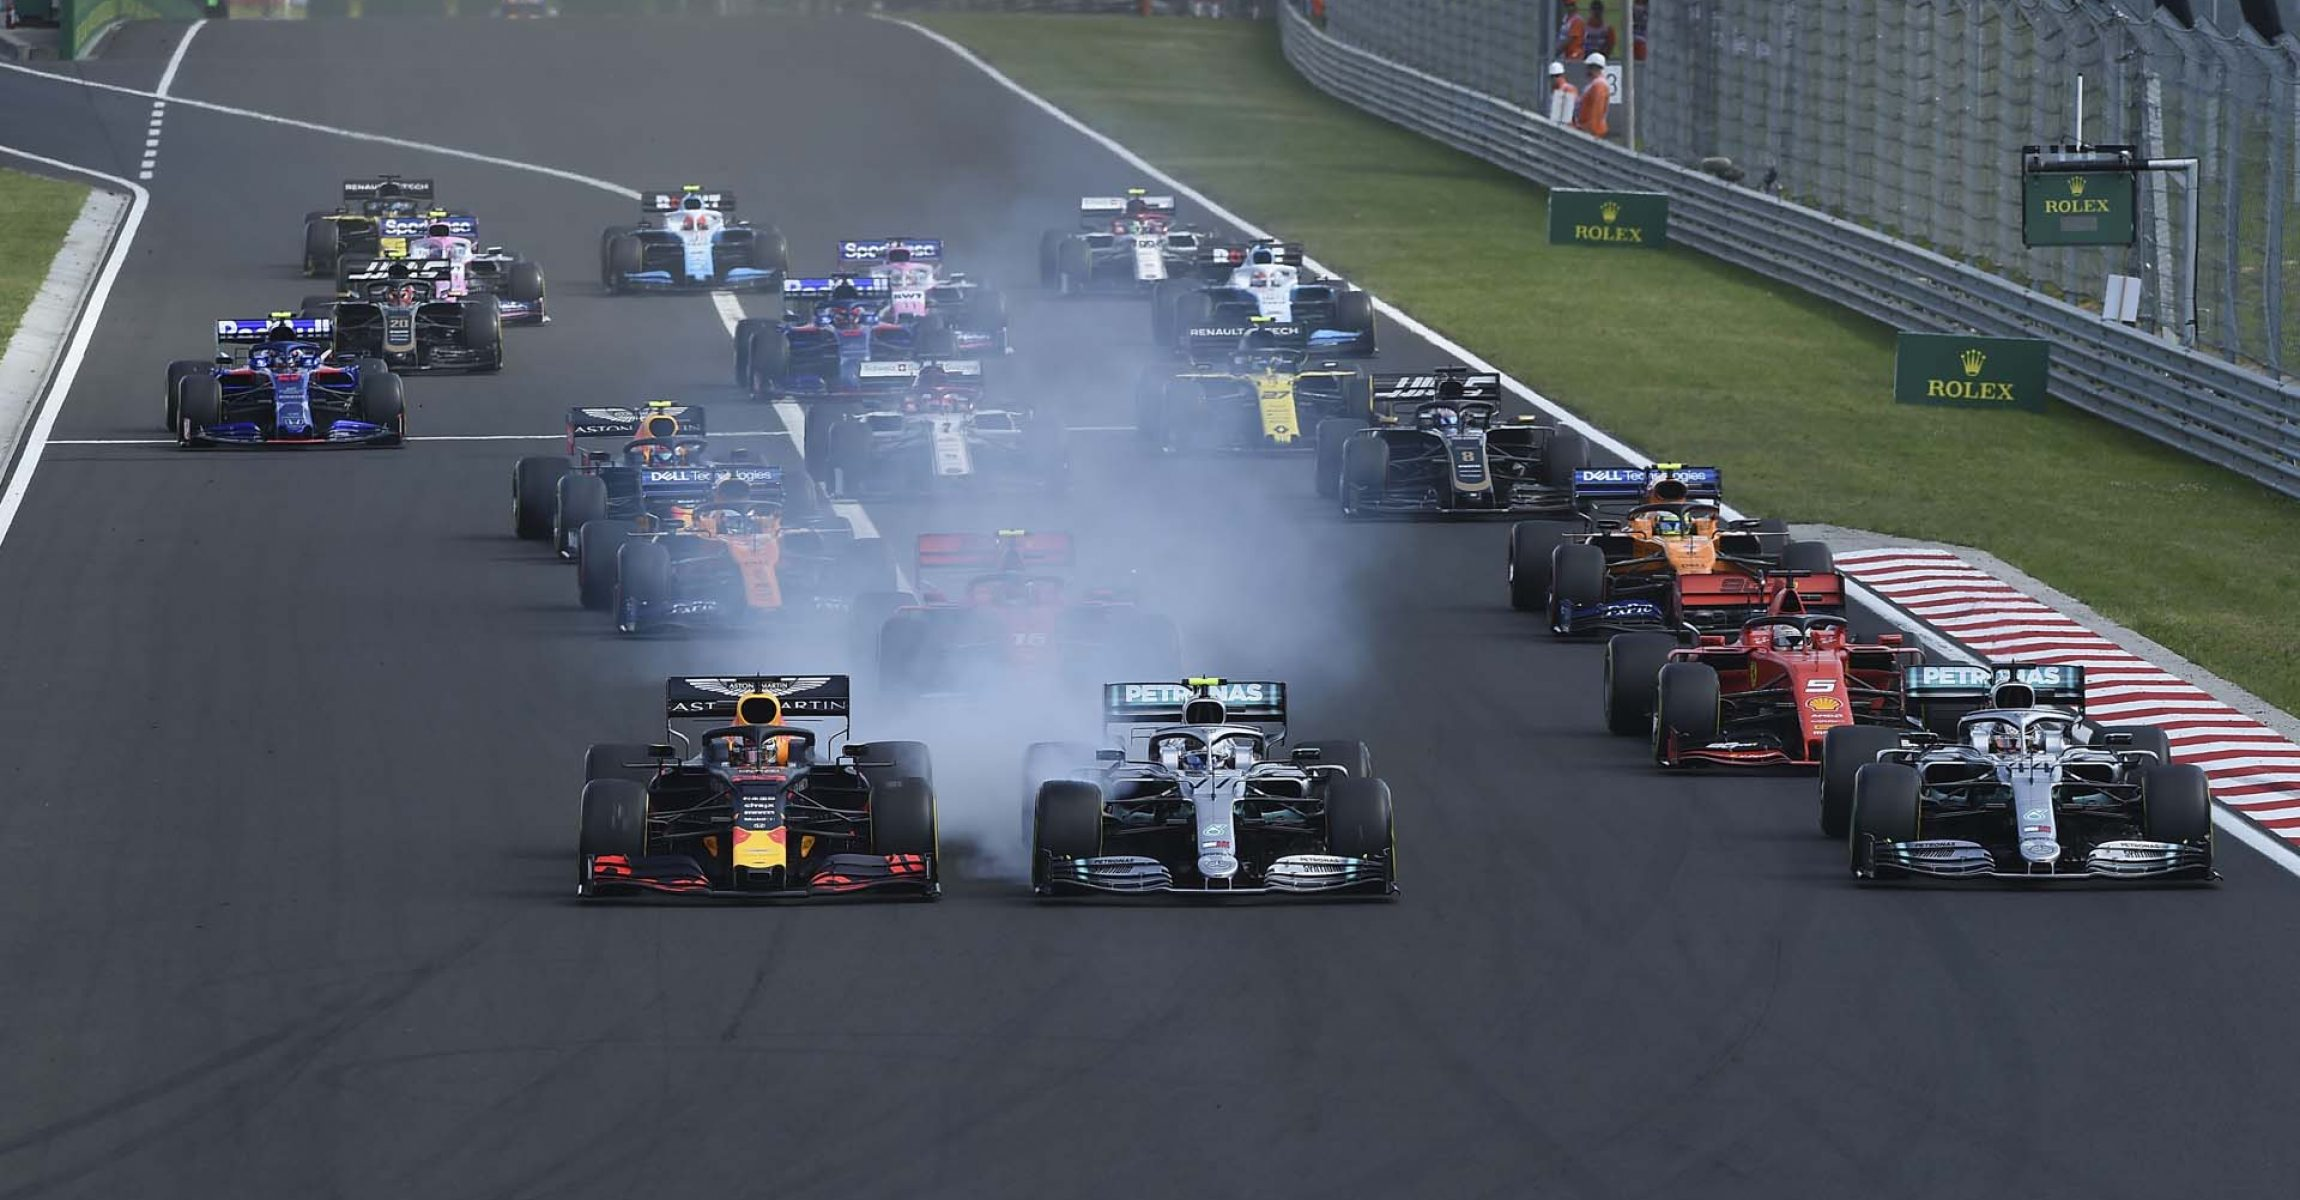 Hungarian GP, start, Hungaroring